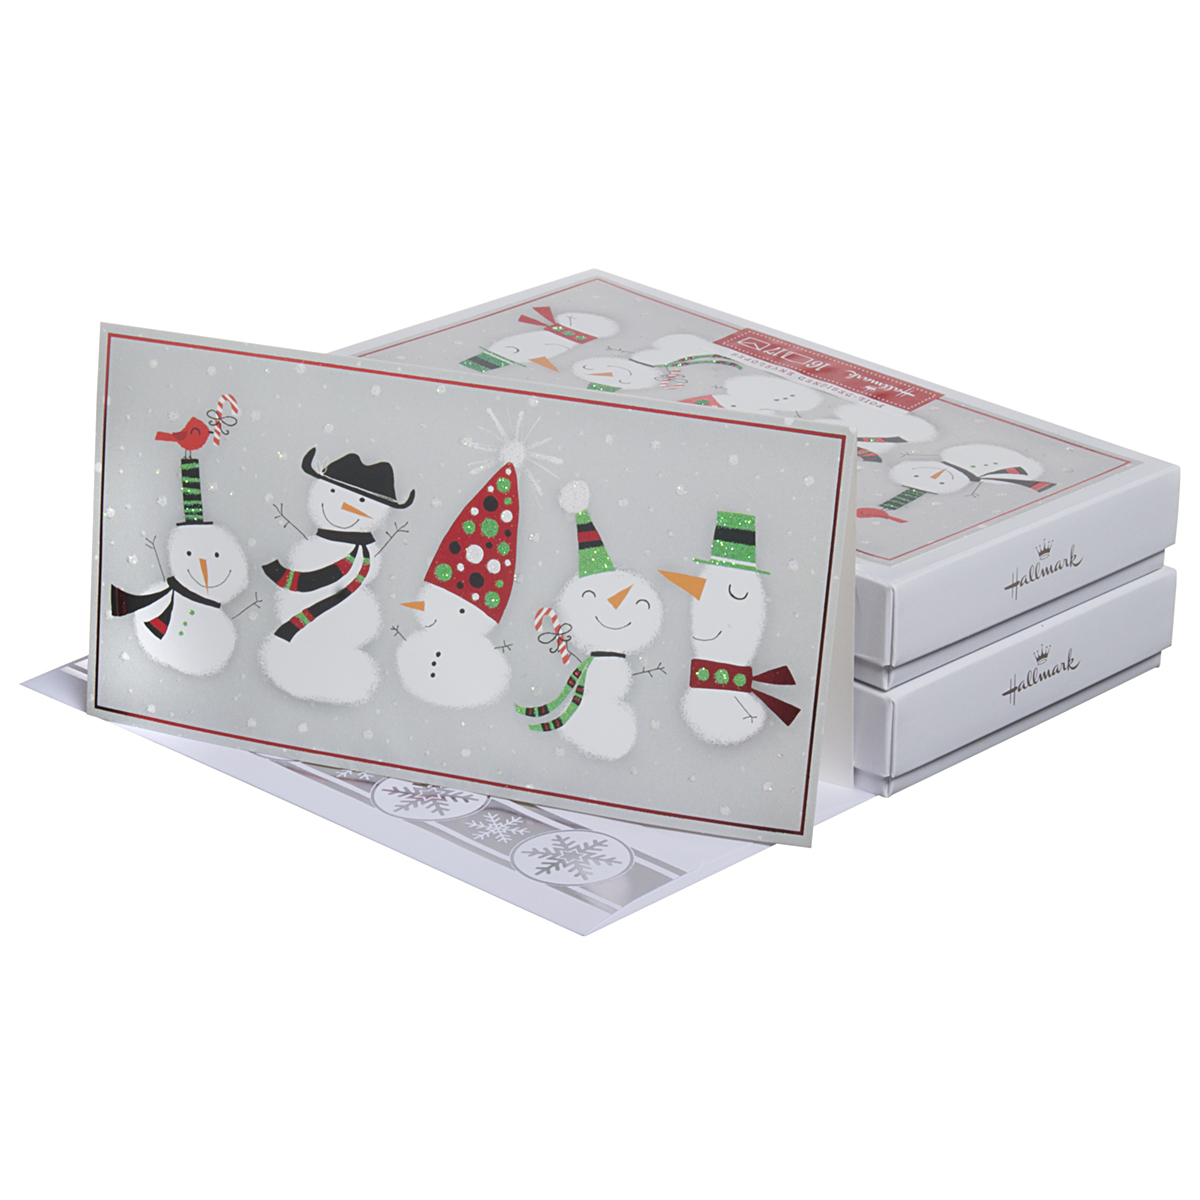 32 Pack Hallmark Humorous Greeting Christmas Cards With Envelopes ...